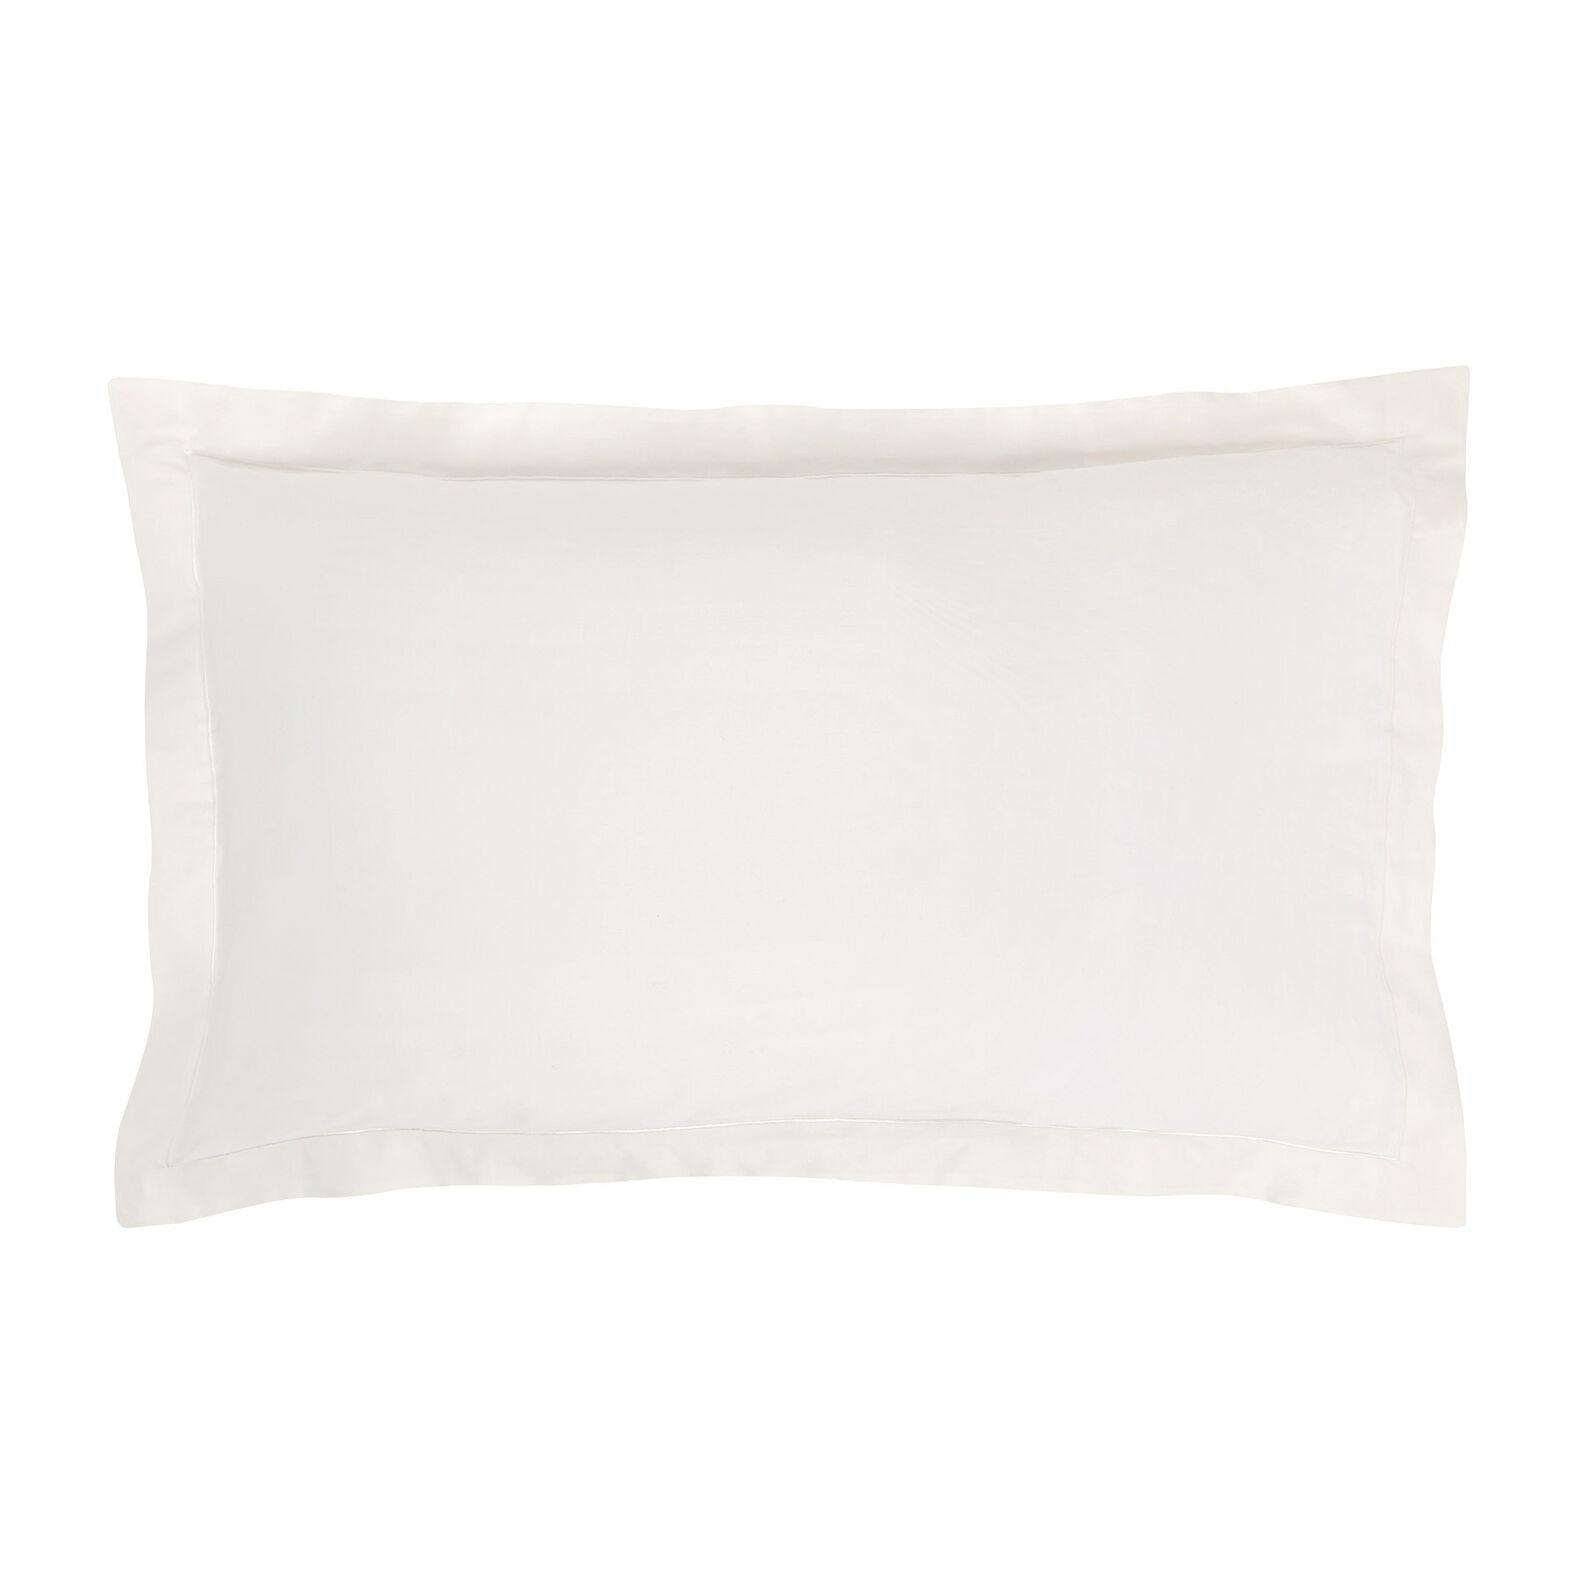 Pillowcase in TC400 satin cotton